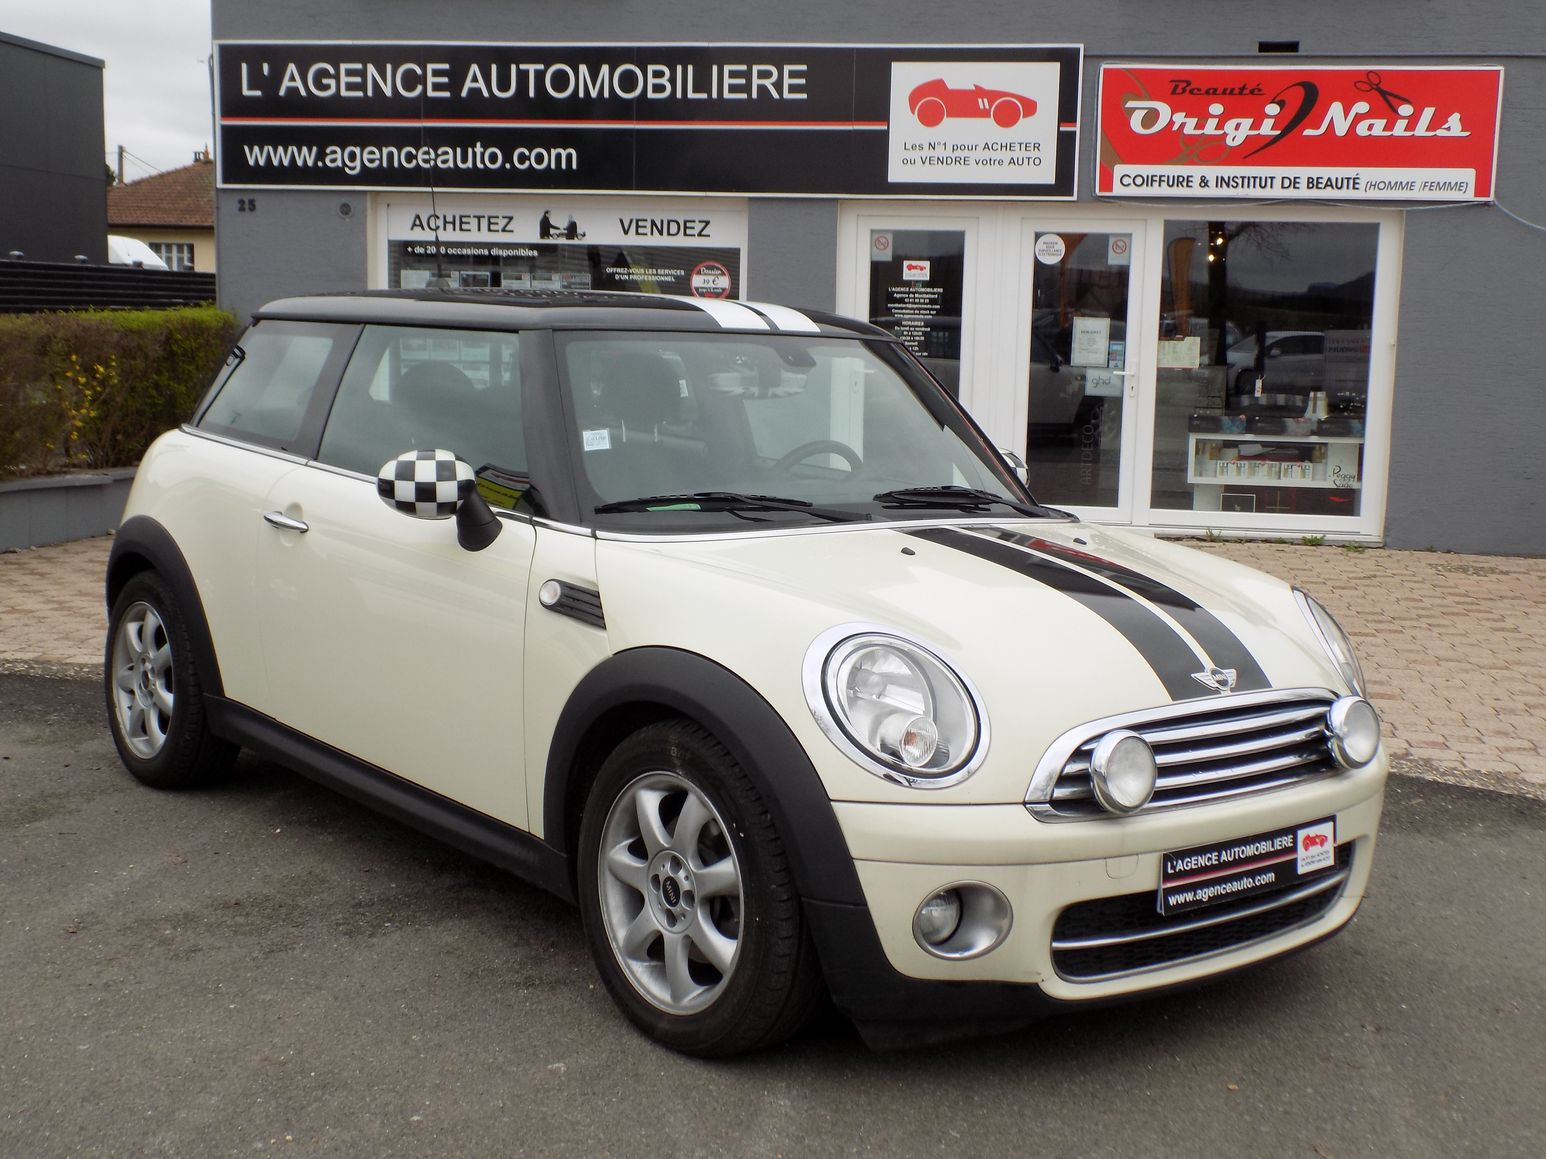 mini cooper pack chili 1 6 110 cv occasion montbeliard pas cher voiture occasion doubs 25400. Black Bedroom Furniture Sets. Home Design Ideas